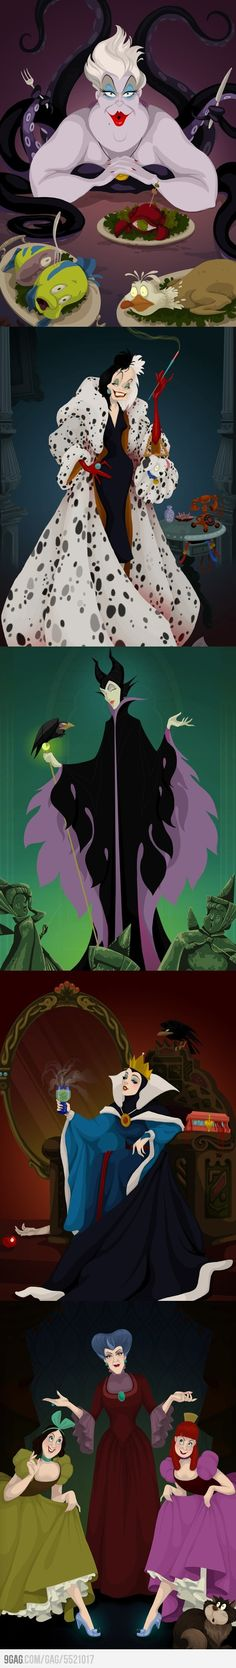 Disney Villains  ocjohn.com high end real estate